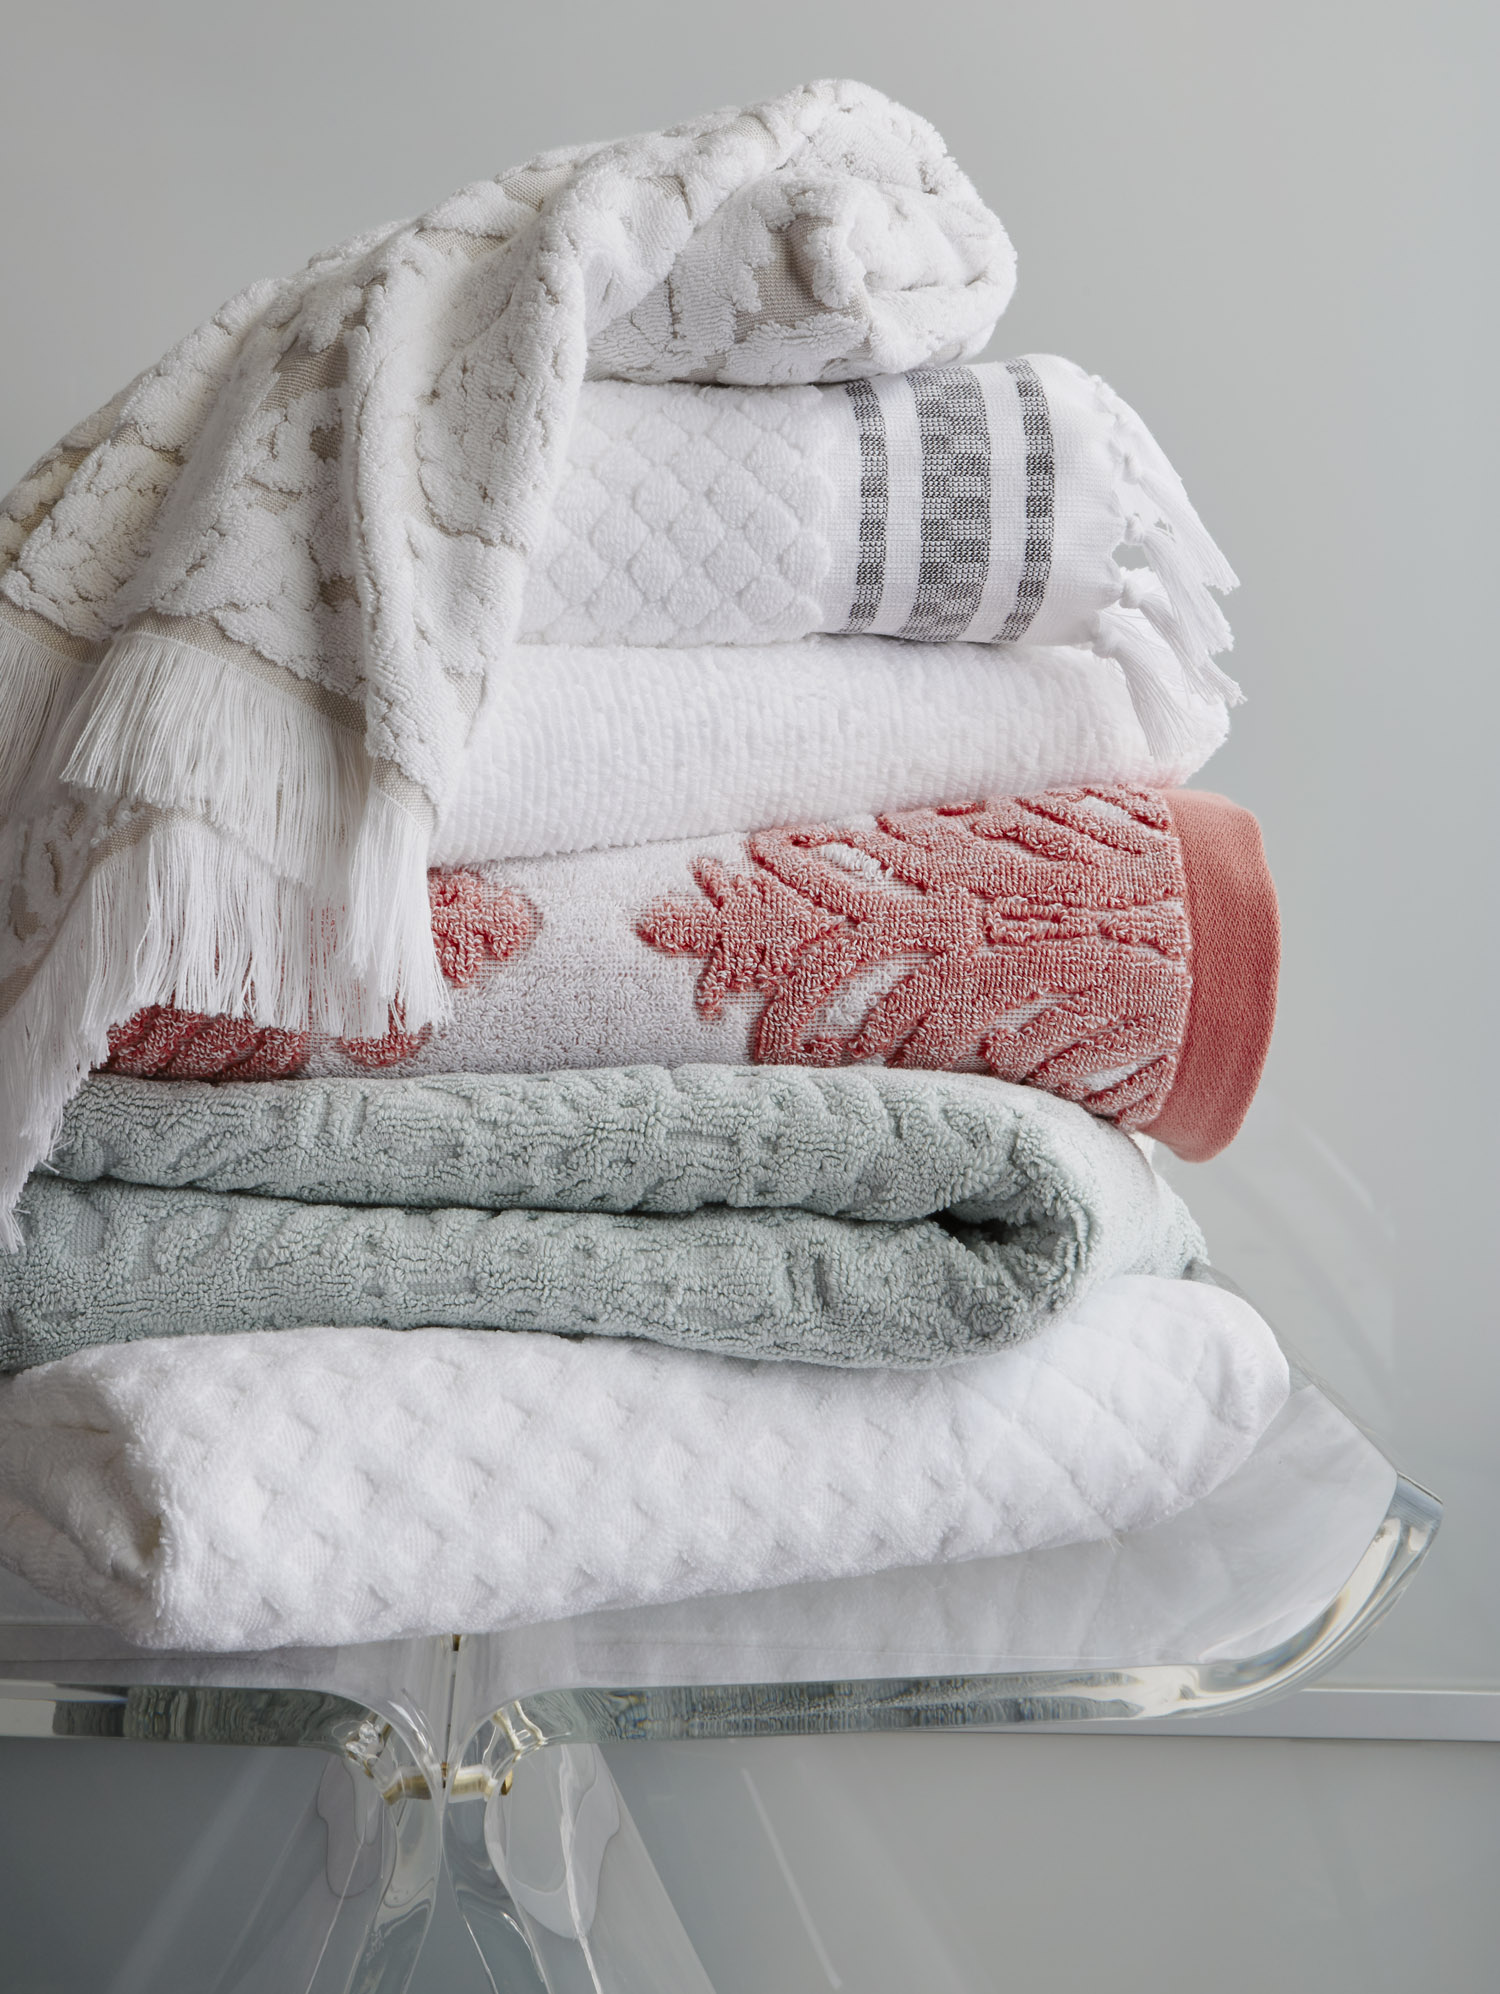 26_TOWELS_H216_GS.jpg